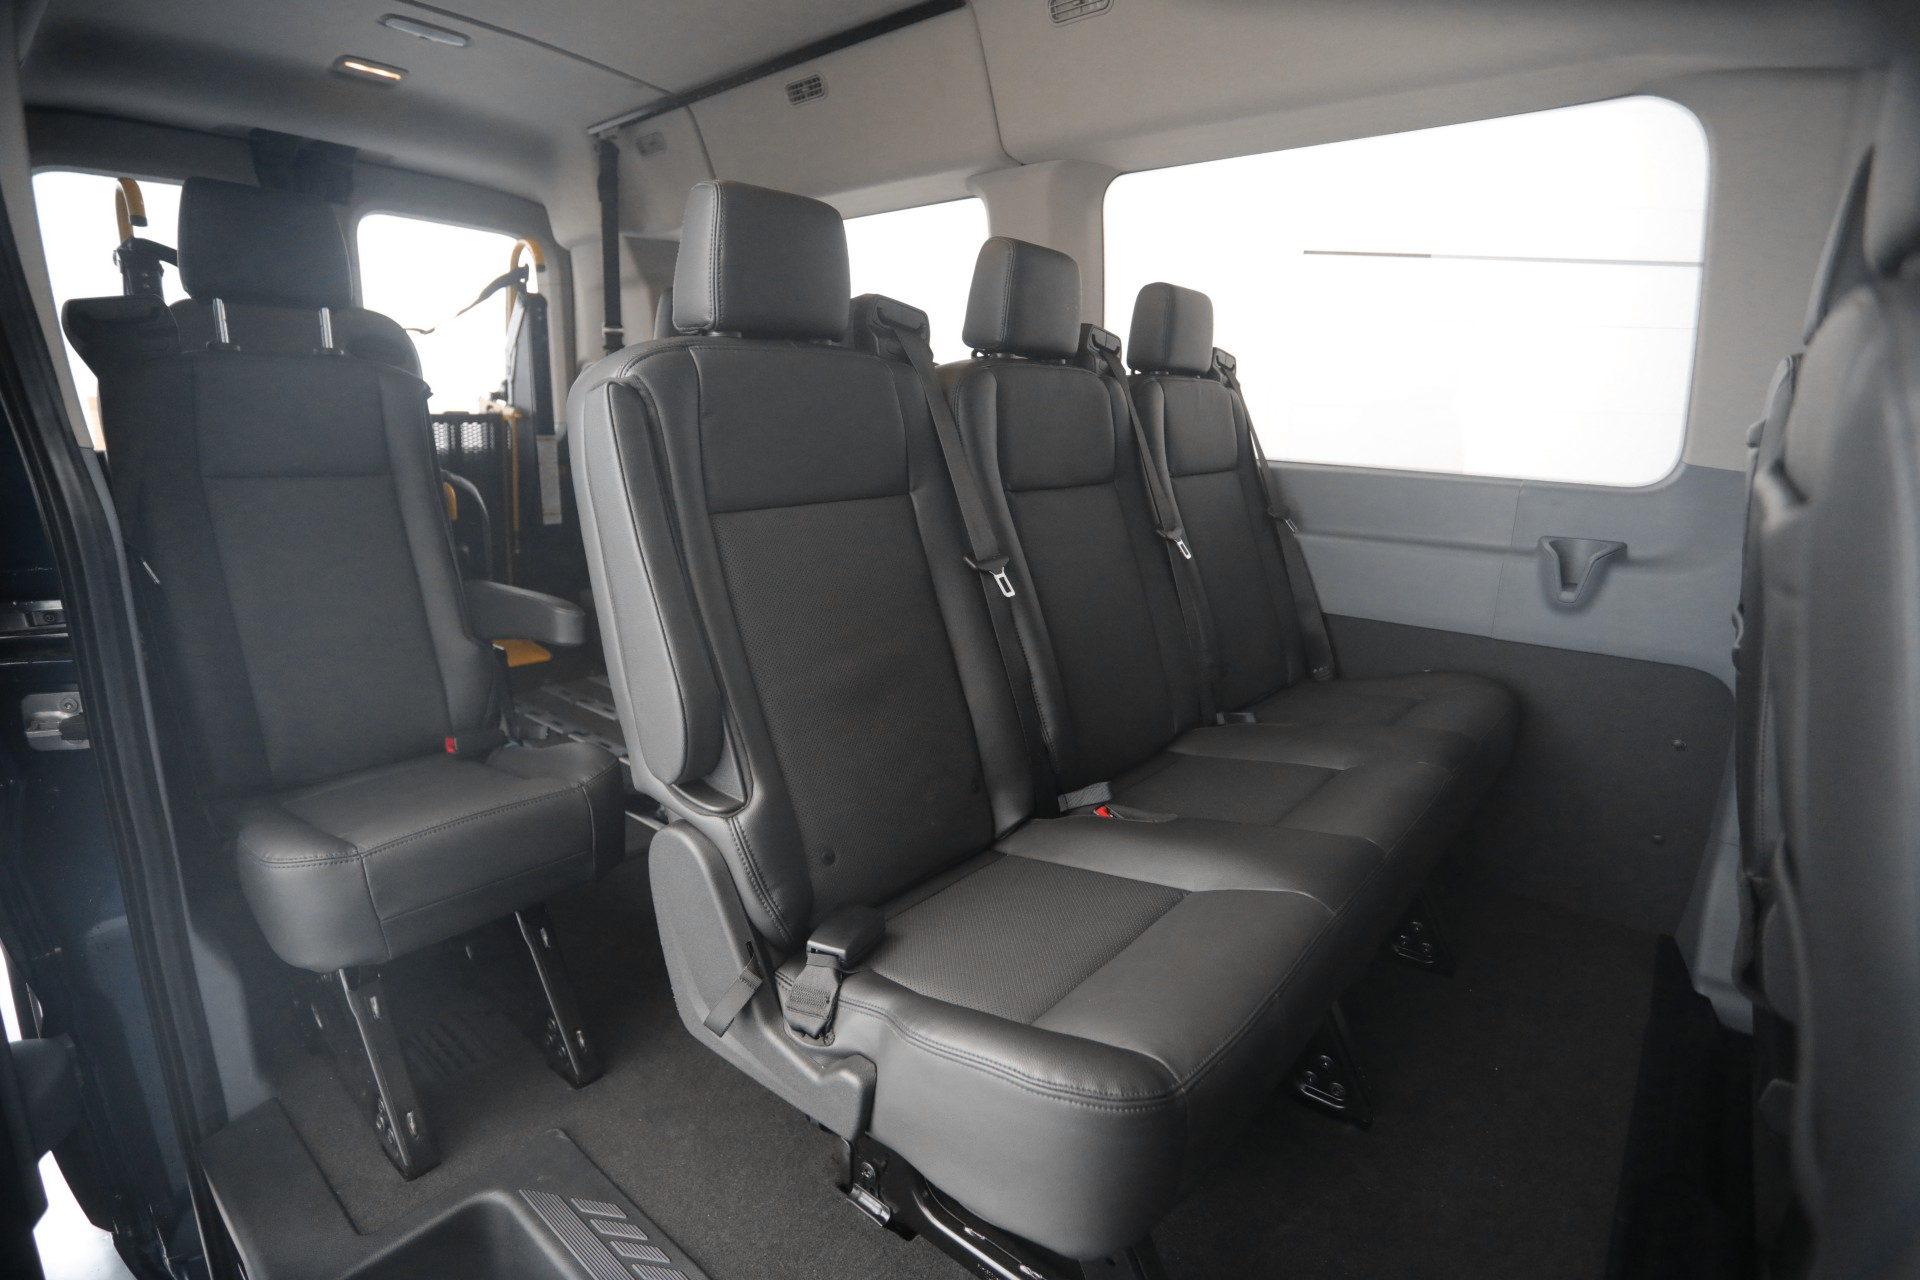 Ford-Transit-Abilitrax-Wheelchair-Van-Interior-5 - Creative